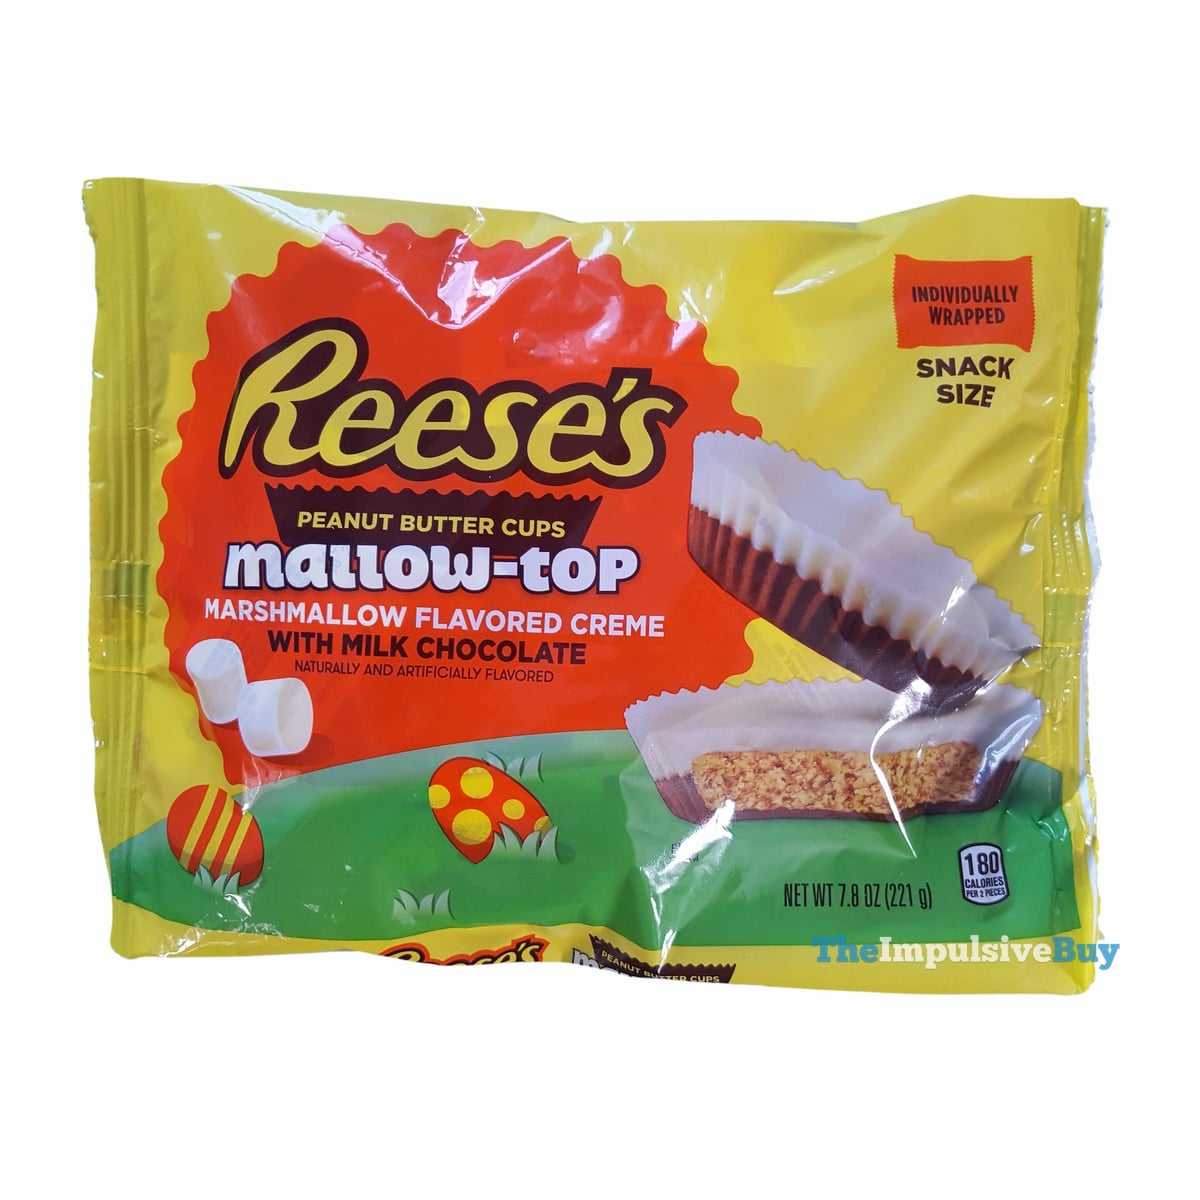 REVIEW: Reese's Mallow-top Peanut Butter Cups - The ...